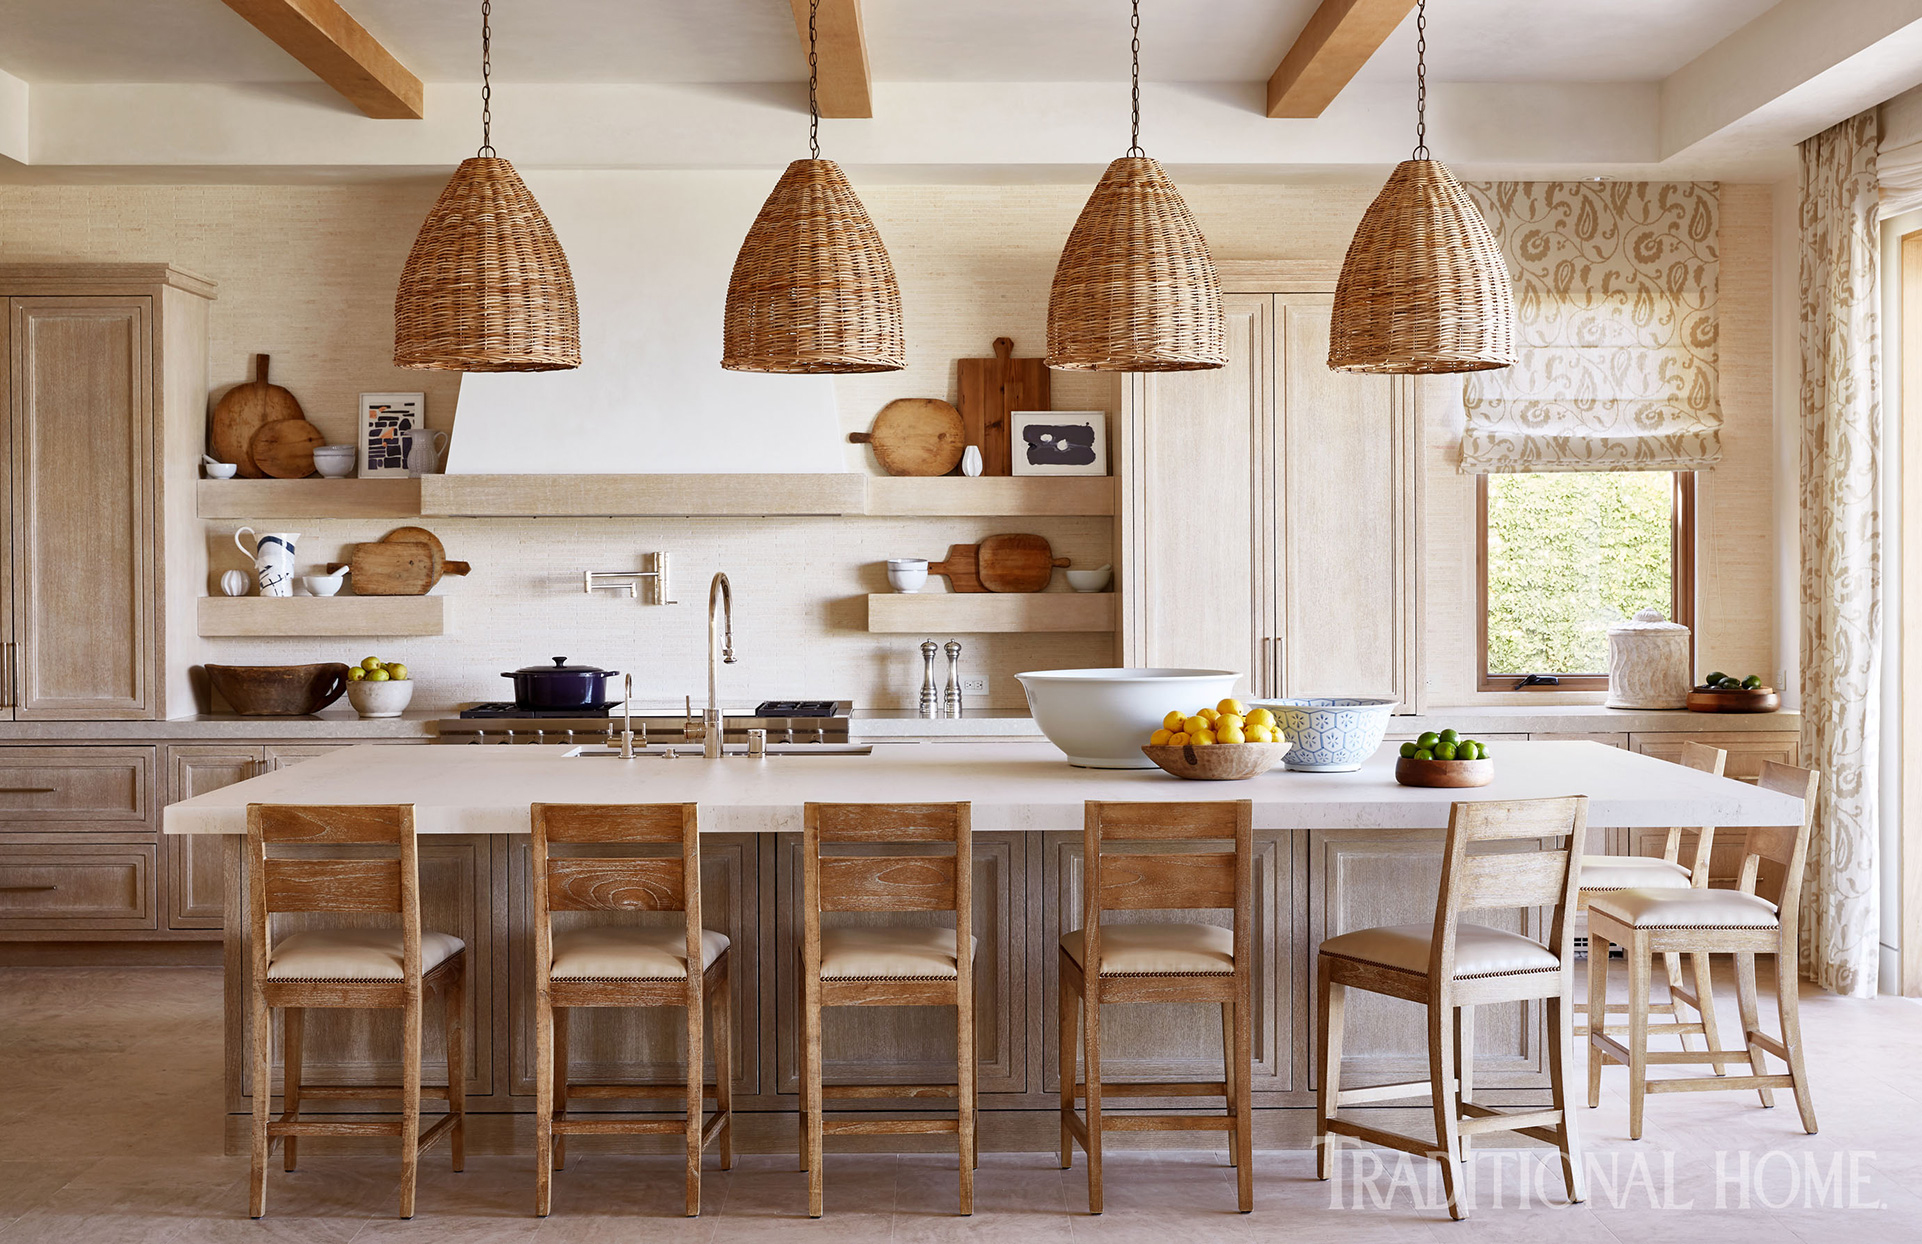 dining area with wicker light fixtures